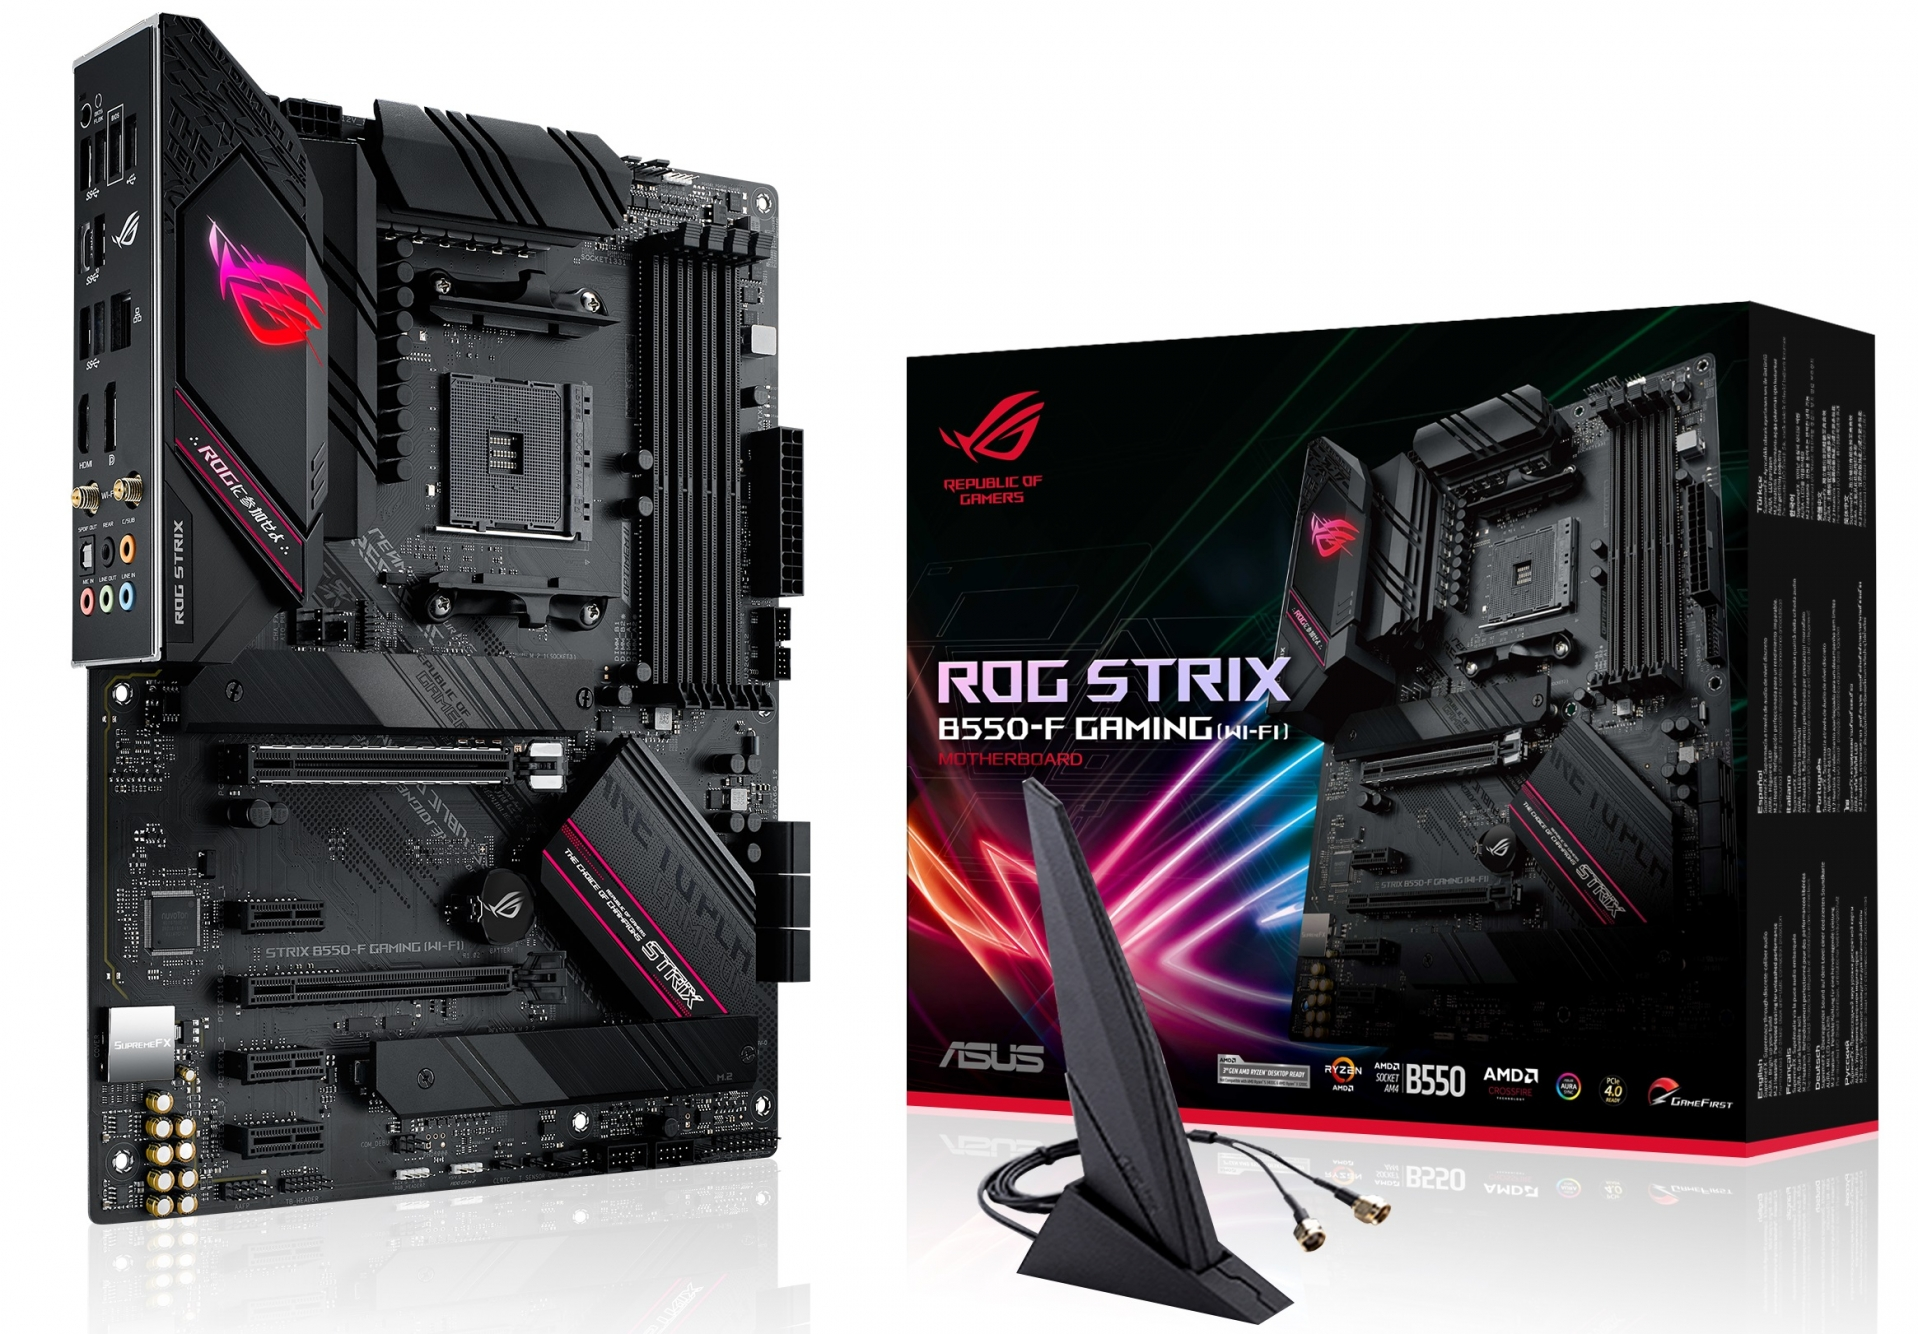 ASUS launches its range of AMD B550 motherboards - B550 has ...